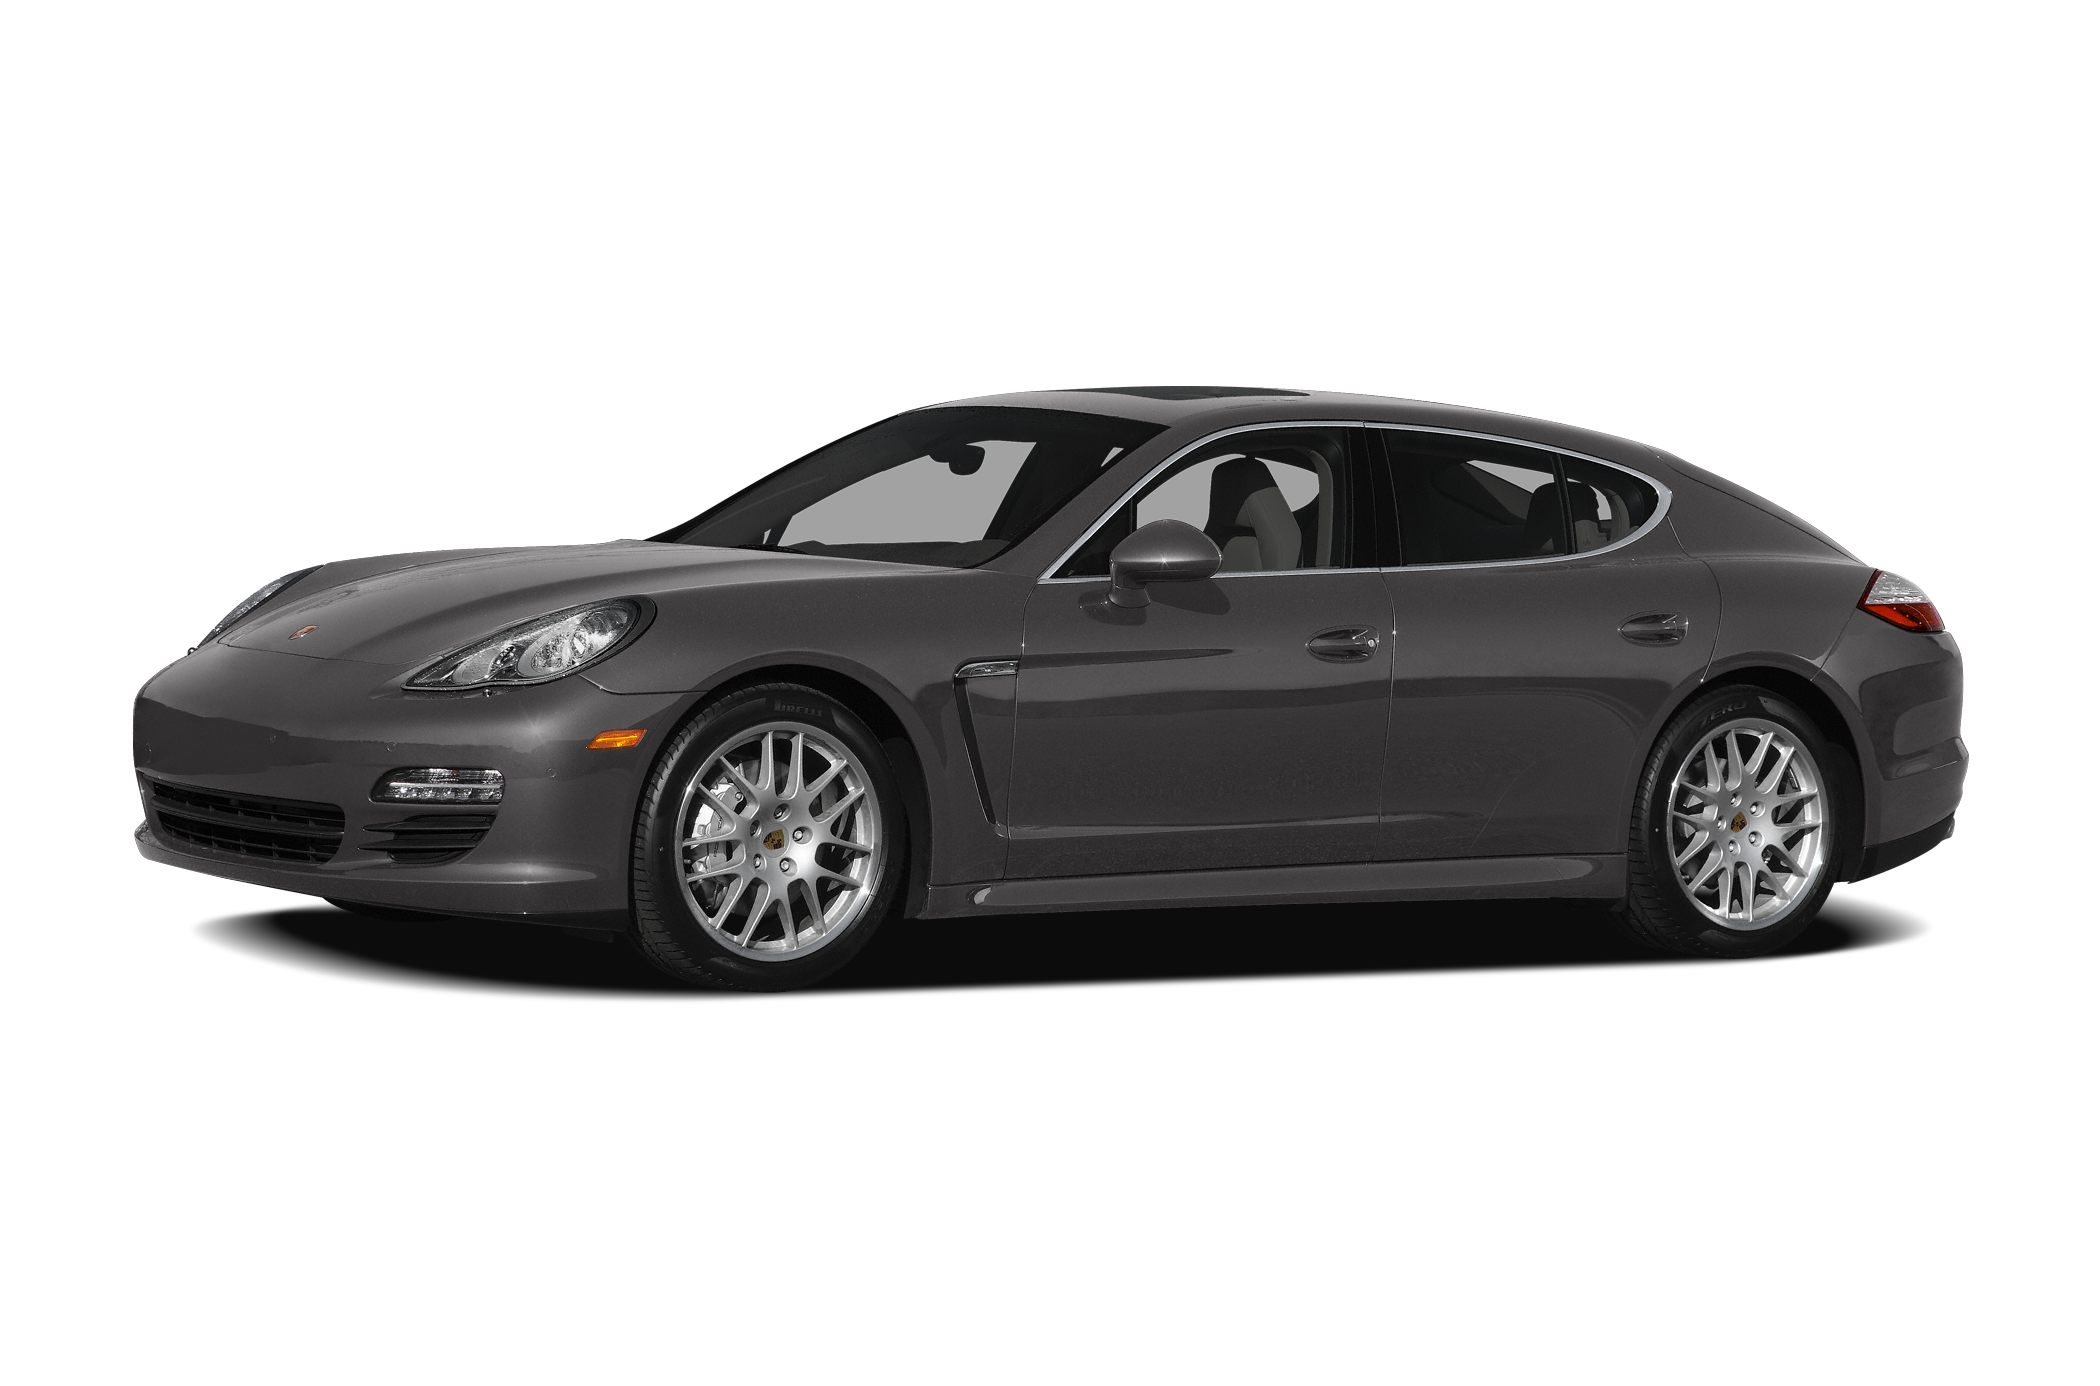 2011 Porsche Panamera 2 Hatchback for sale in Newport Beach for $58,980 with 23,855 miles.